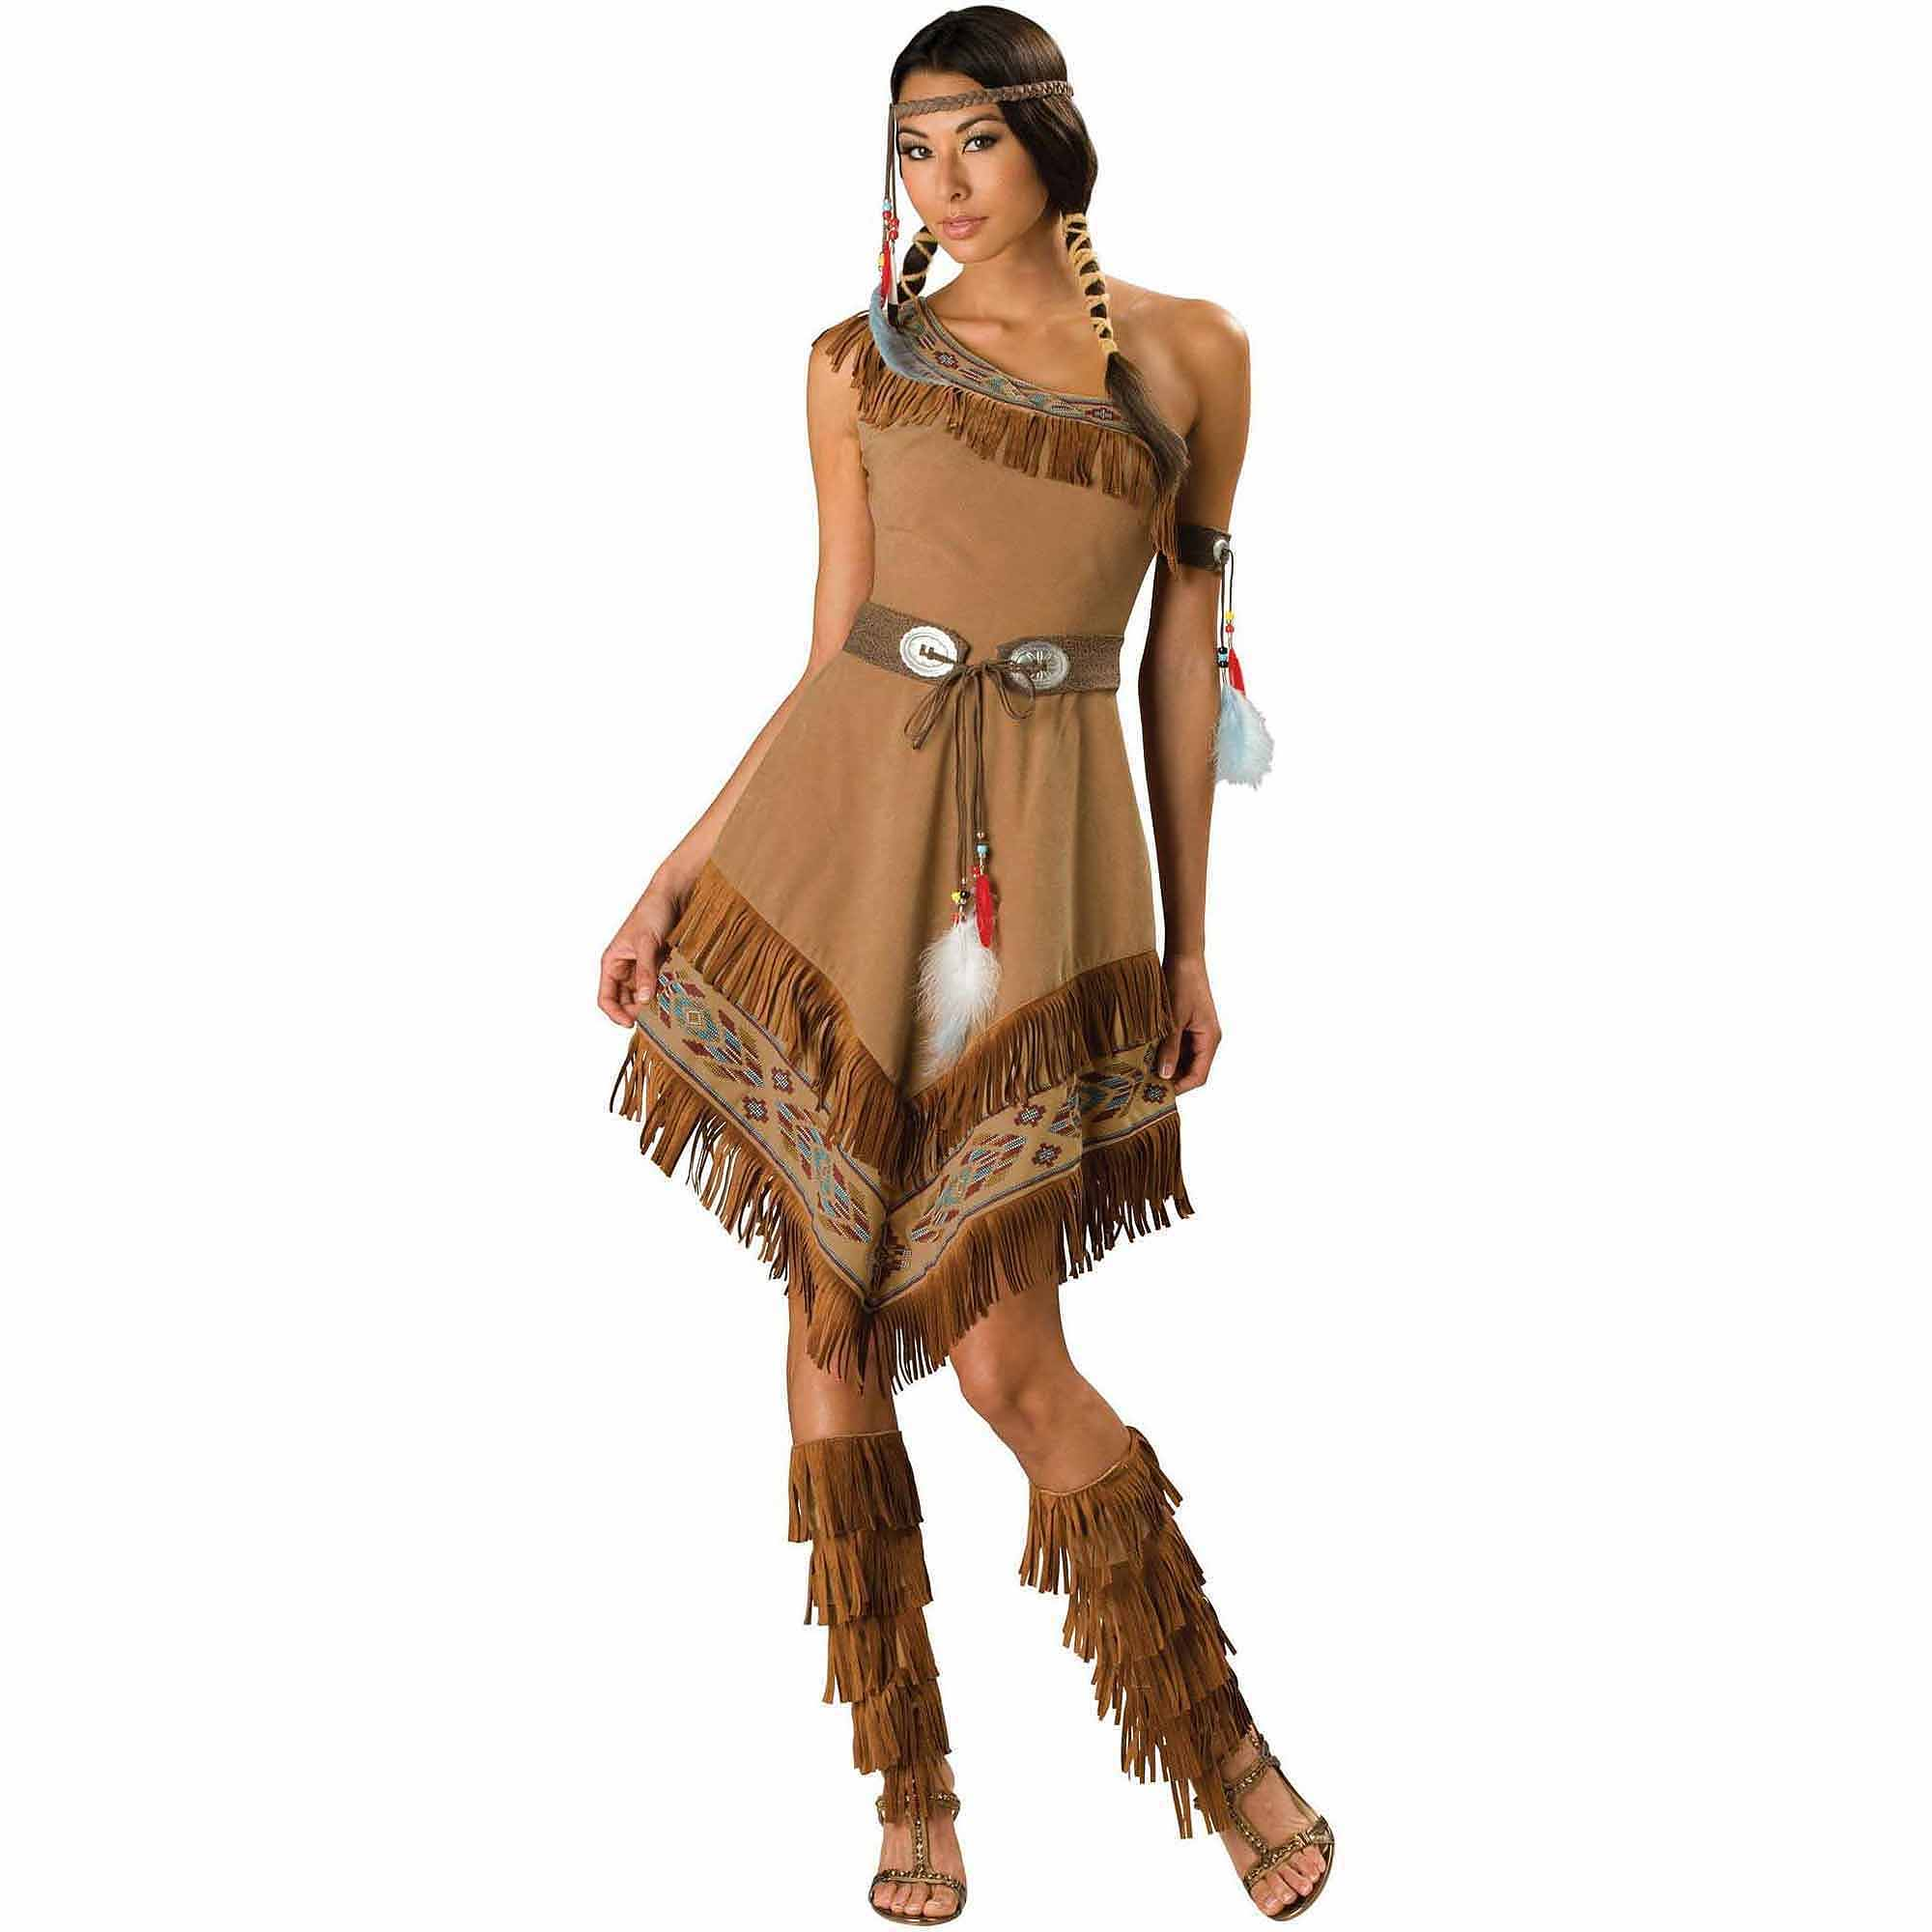 all sizes Native Beauty Indian Costume for Women New by Cal Costumes 01259